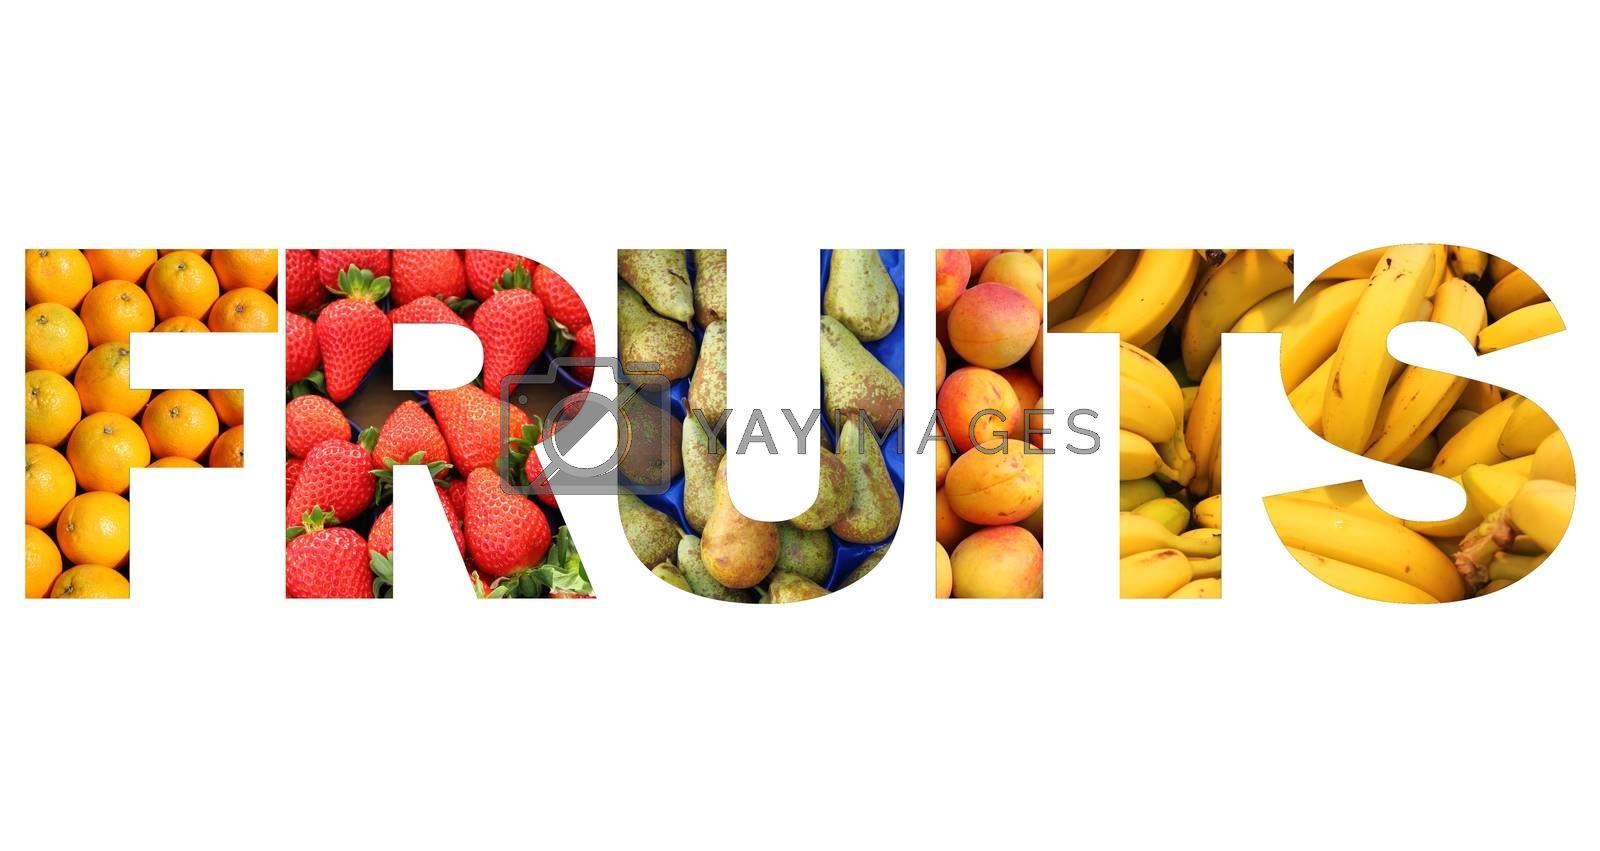 Fruits text by alessandro0770